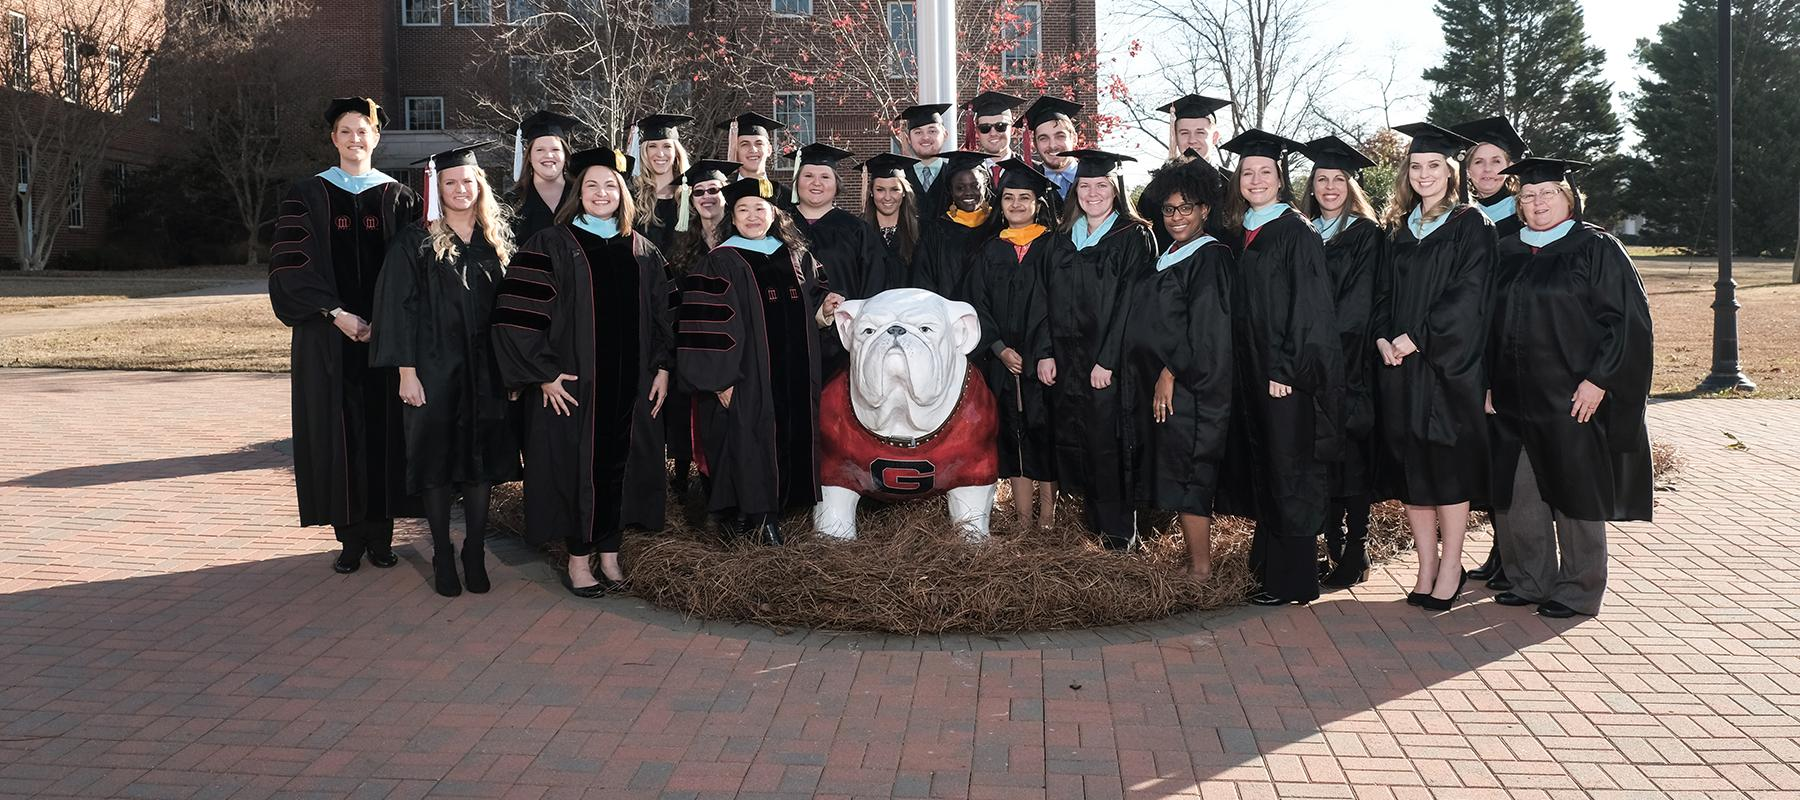 The UGA-Griffin graduating class of Fall 2016 pose with Dr. Lew Hunnicutt and the Uga statue near the Flynt Building